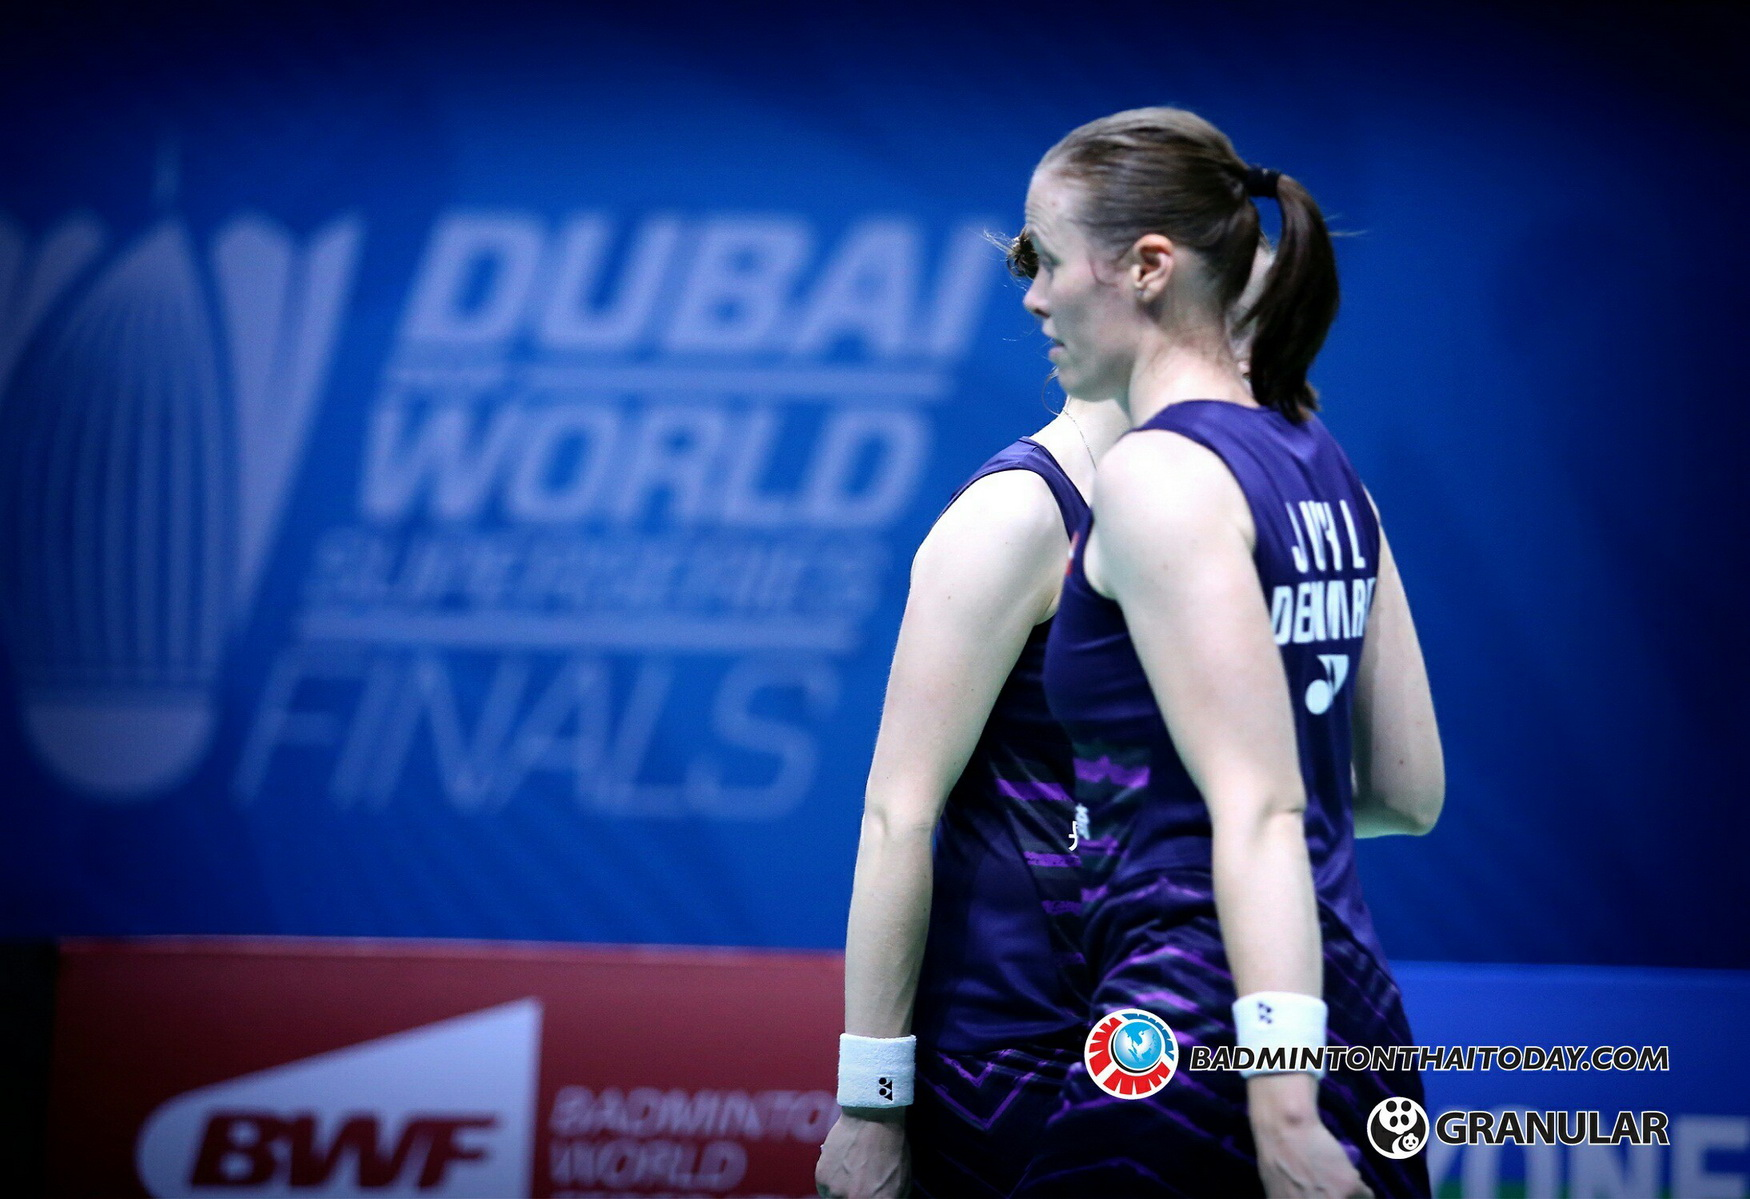 Kamilla Rytter Juhl - Christinna Pedersen @ Dubai World Superseries Final 2016 รูปภาพกีฬาแบดมินตัน